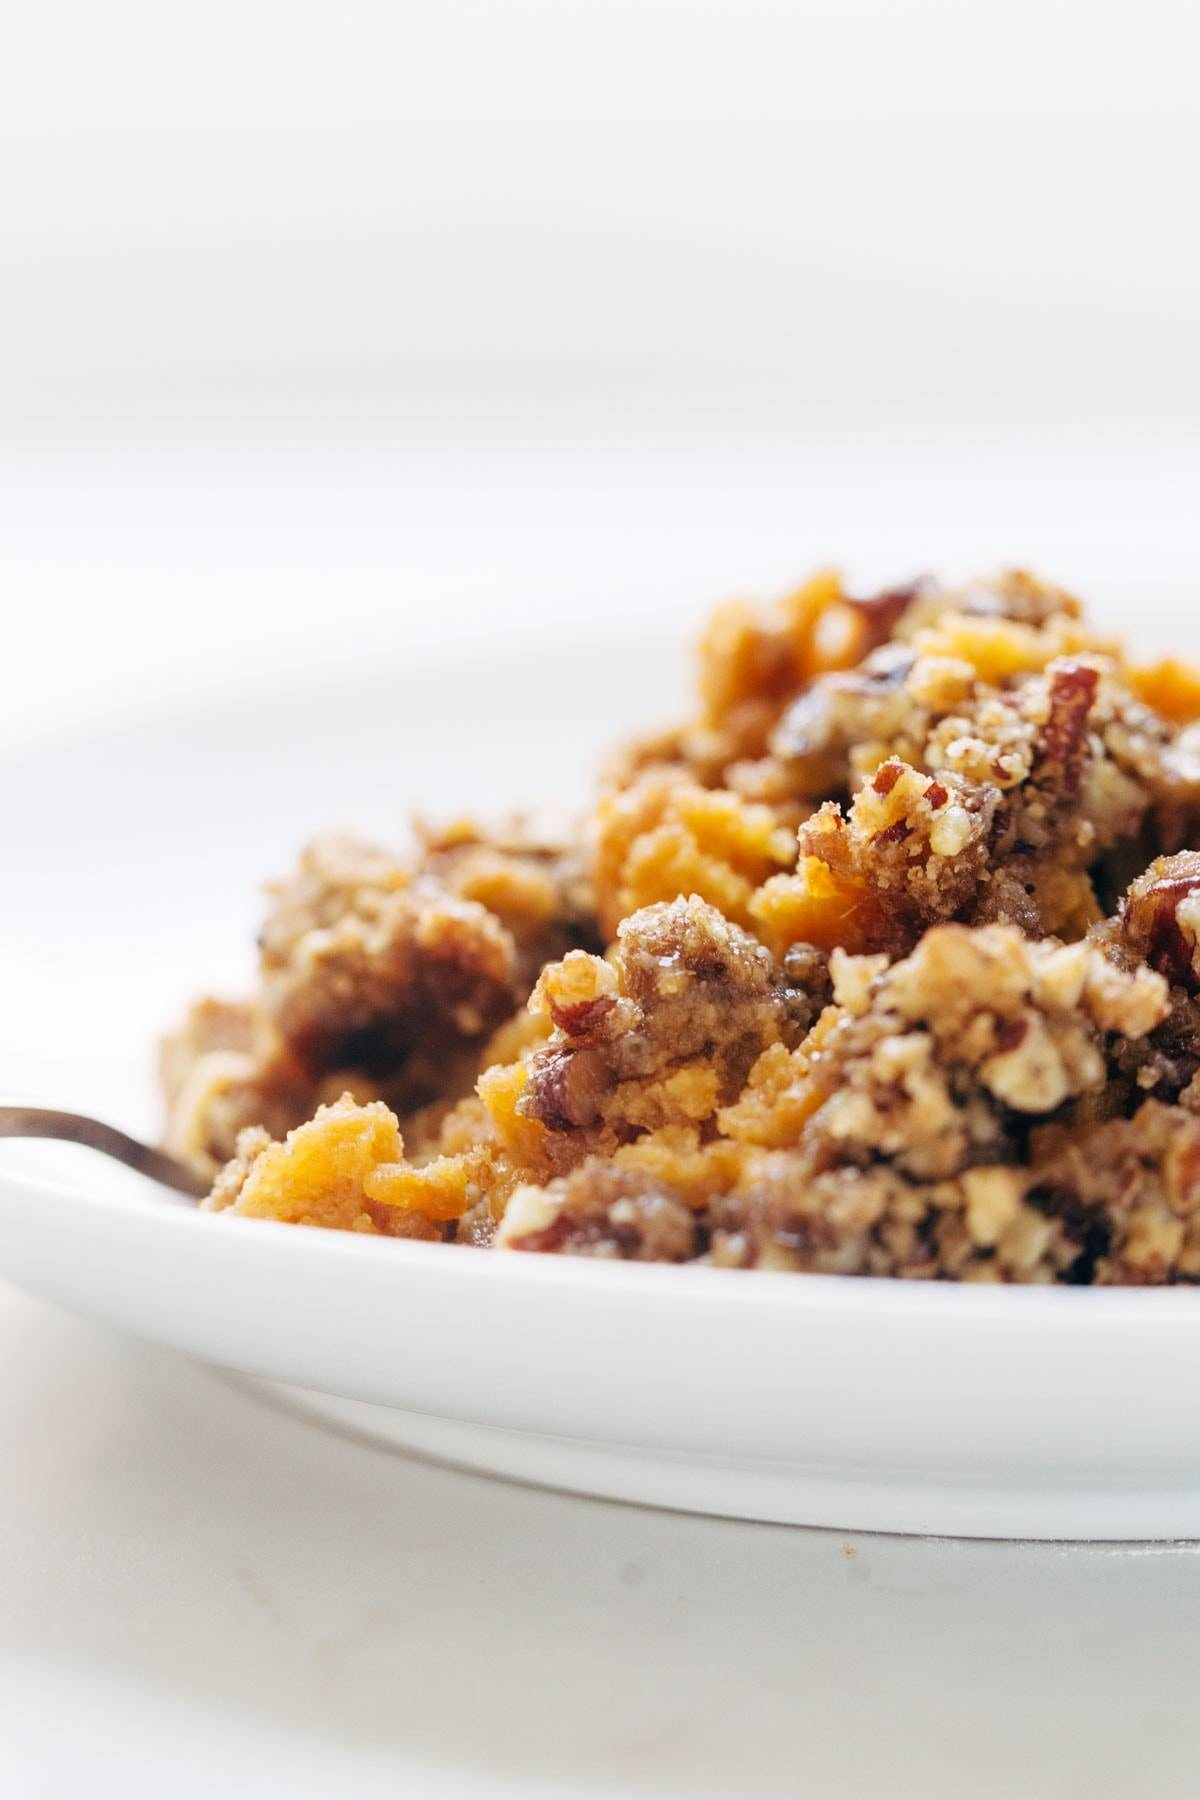 Sweet Potato Casserole with a crunchy brown sugar topping in a bowl with a fork.